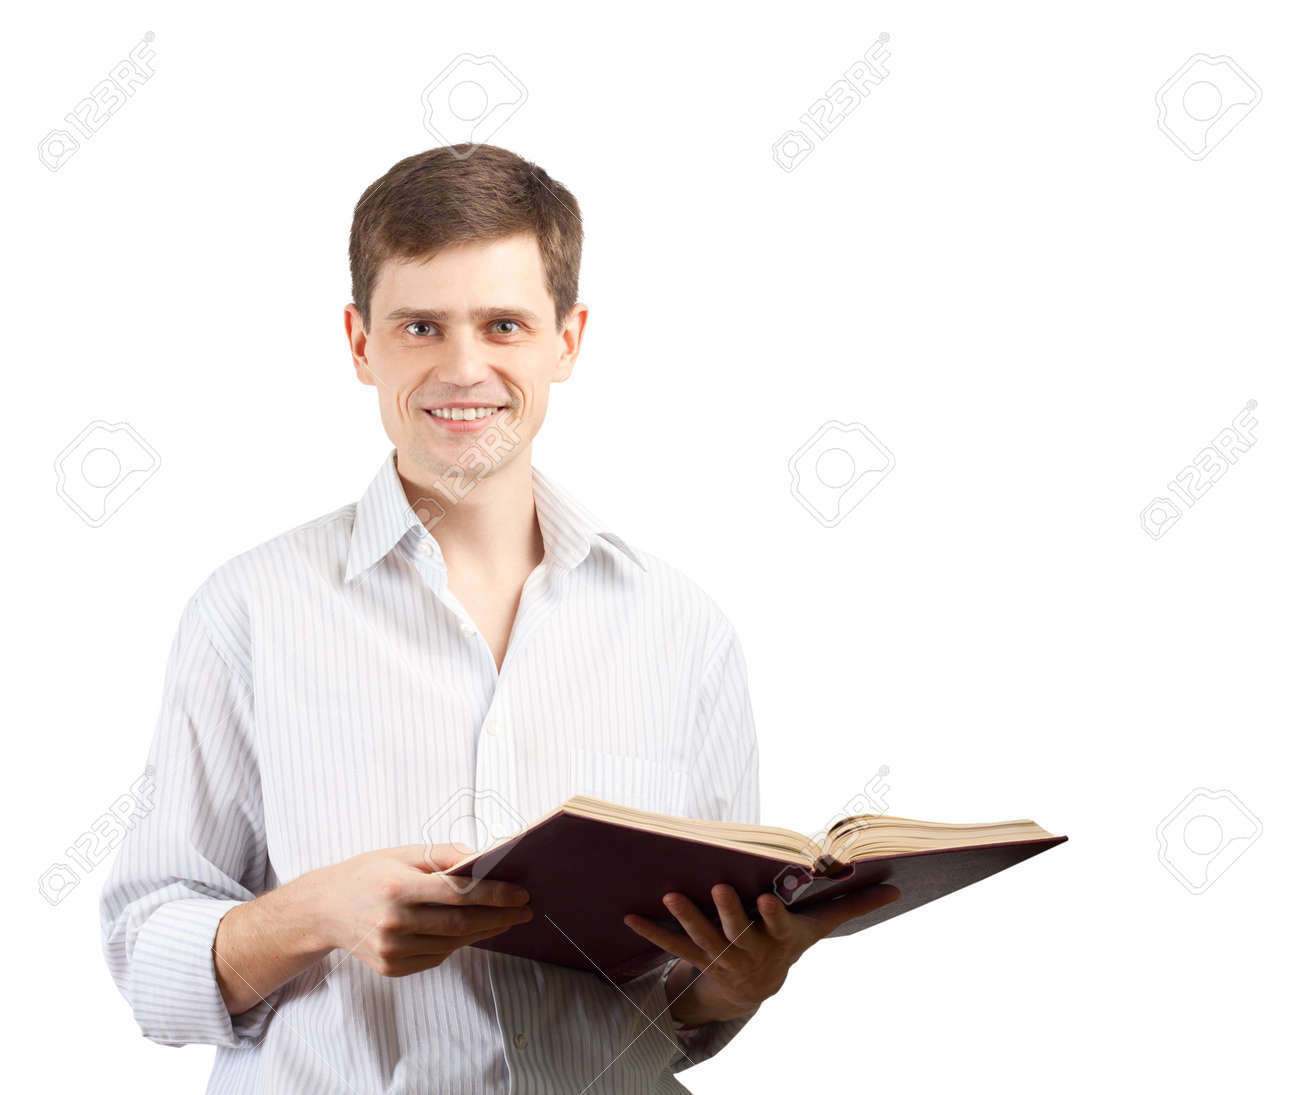 Smiling man with open book over white background. Stock Photo - 9467827